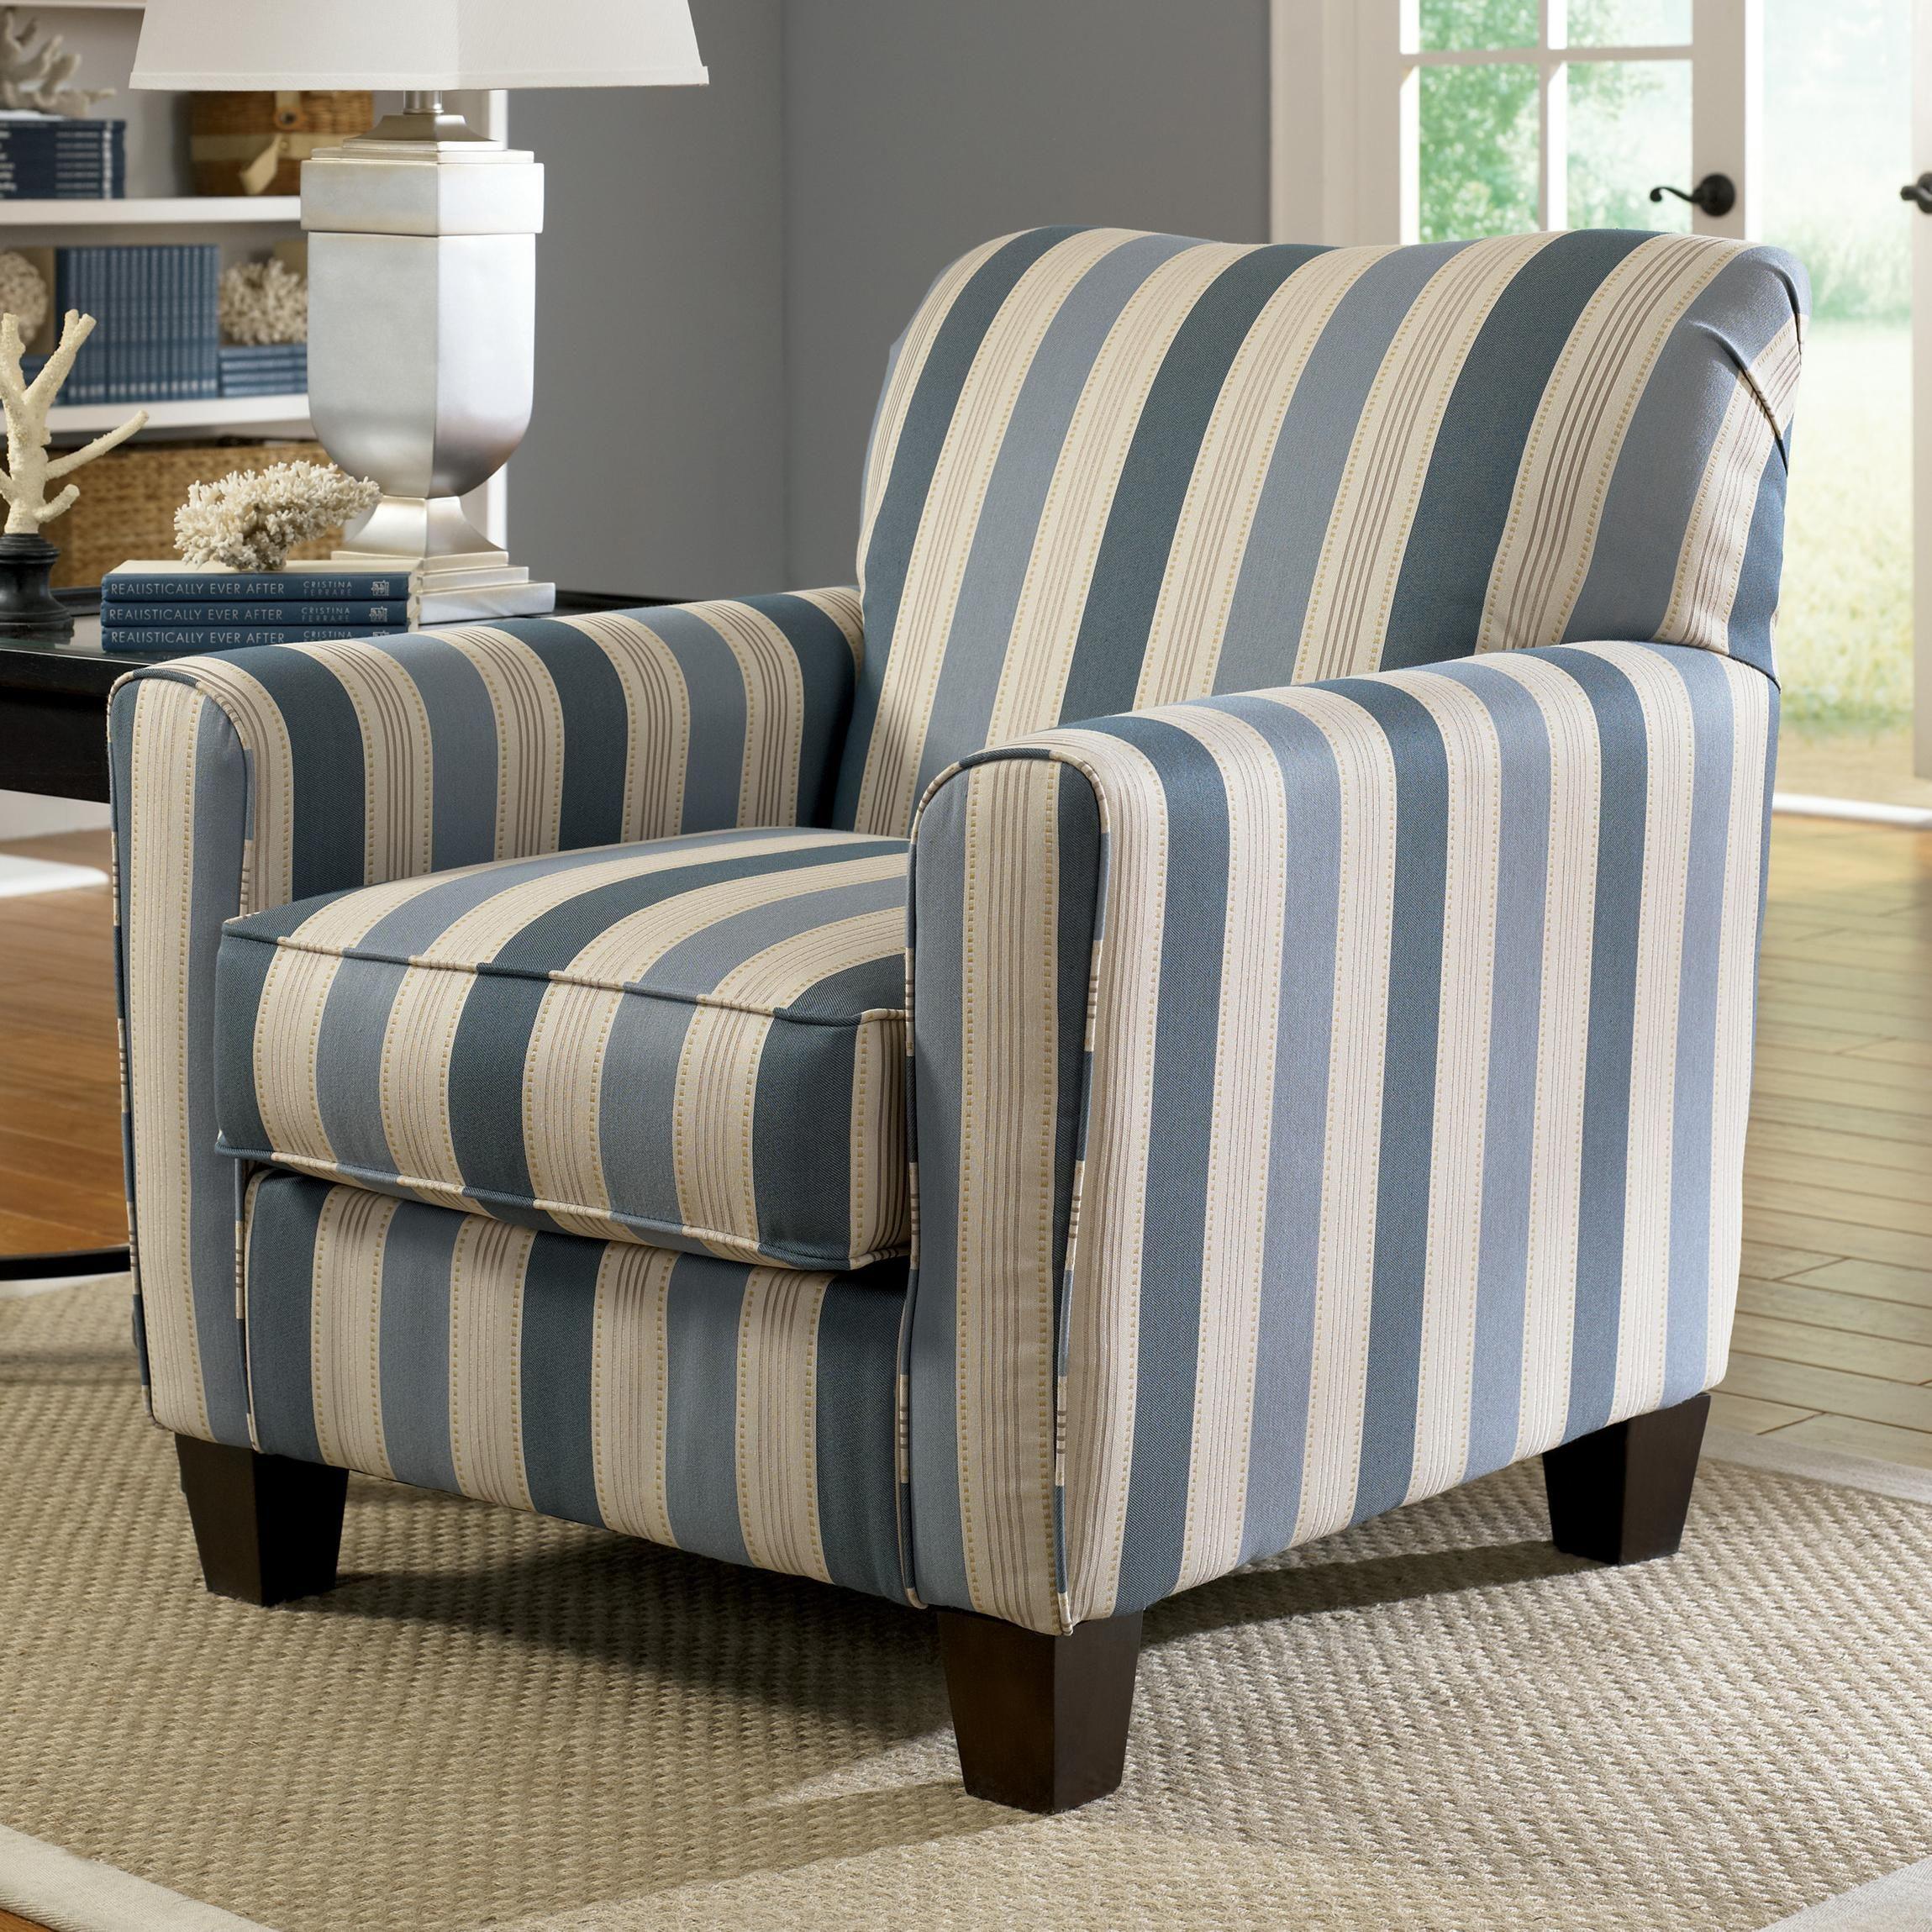 Best Addison Blue Stripe Accent Chair With Exposed Wood Feet By Signature Design By Ashley 640 x 480